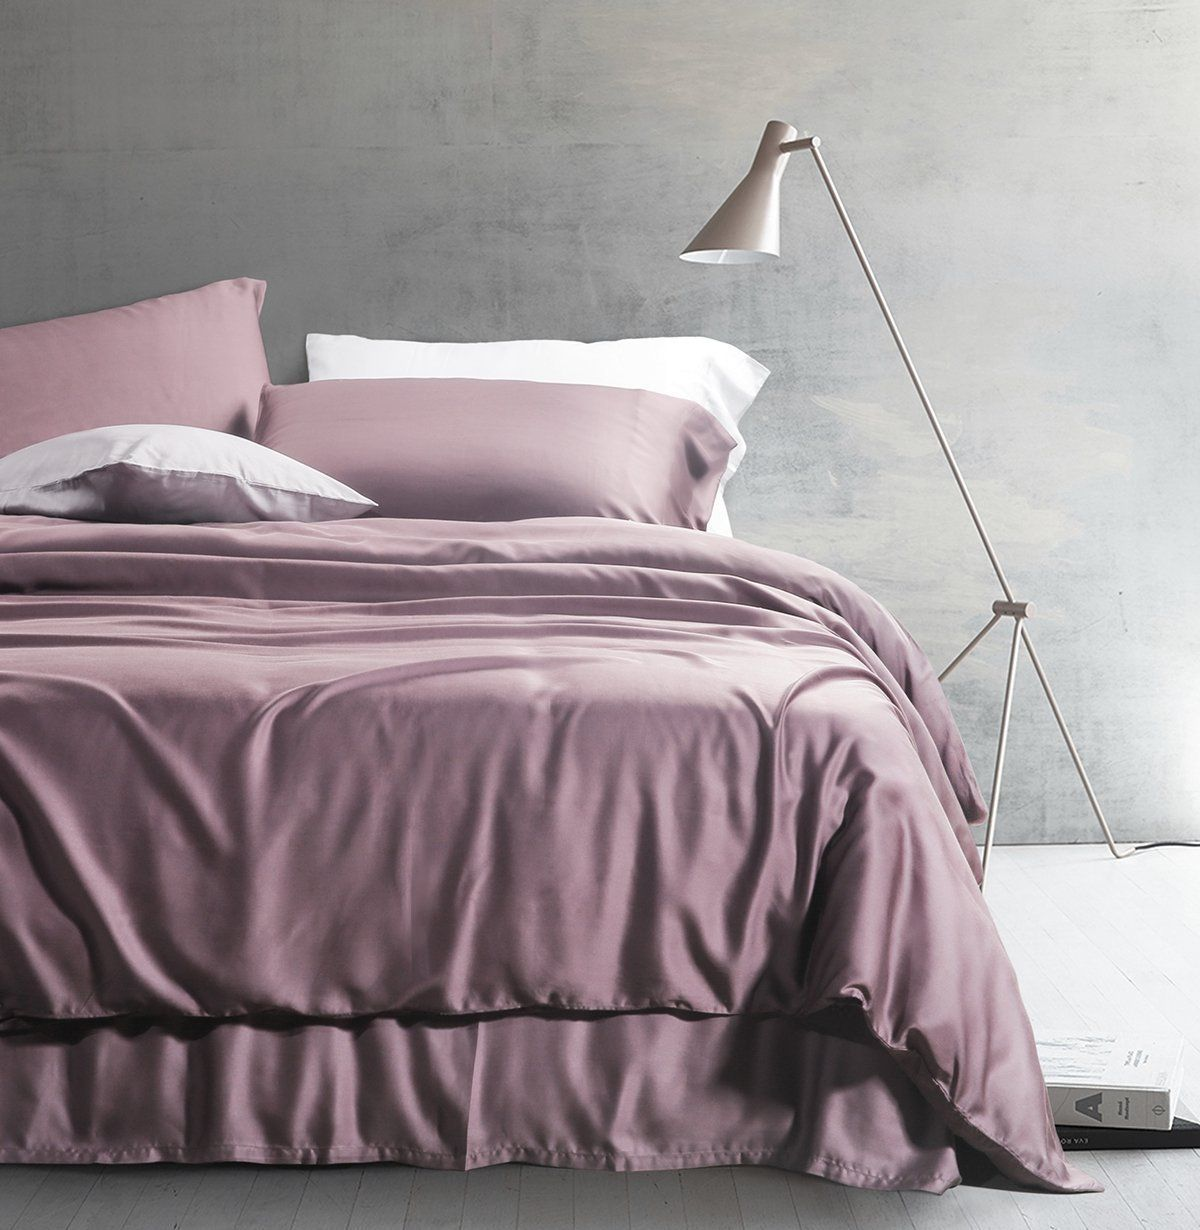 Purple Duvet Cover Solid Color Egyptian Cotton Luxury Bedding Set High Thread Count